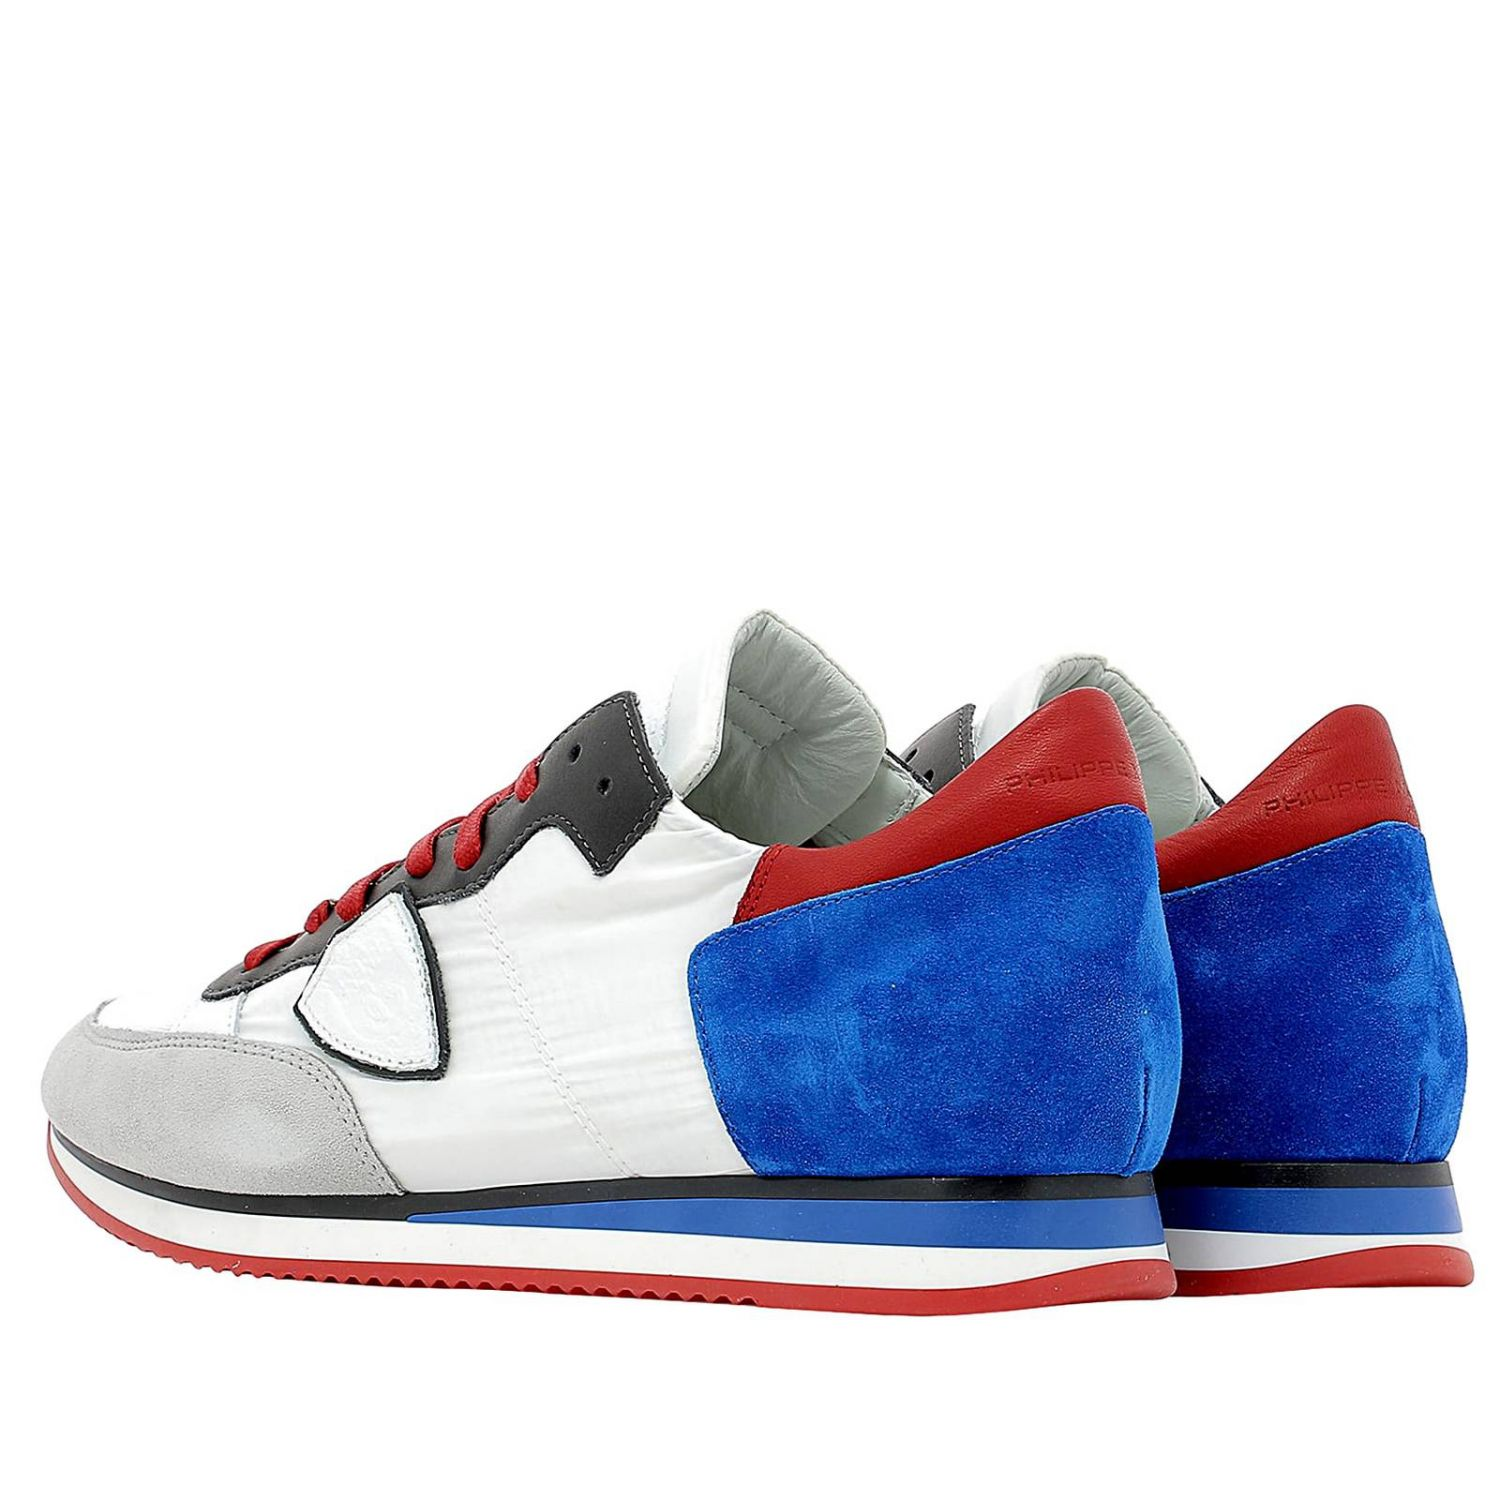 Trainers Philippe Model: Shoes men Philippe Model blue 3